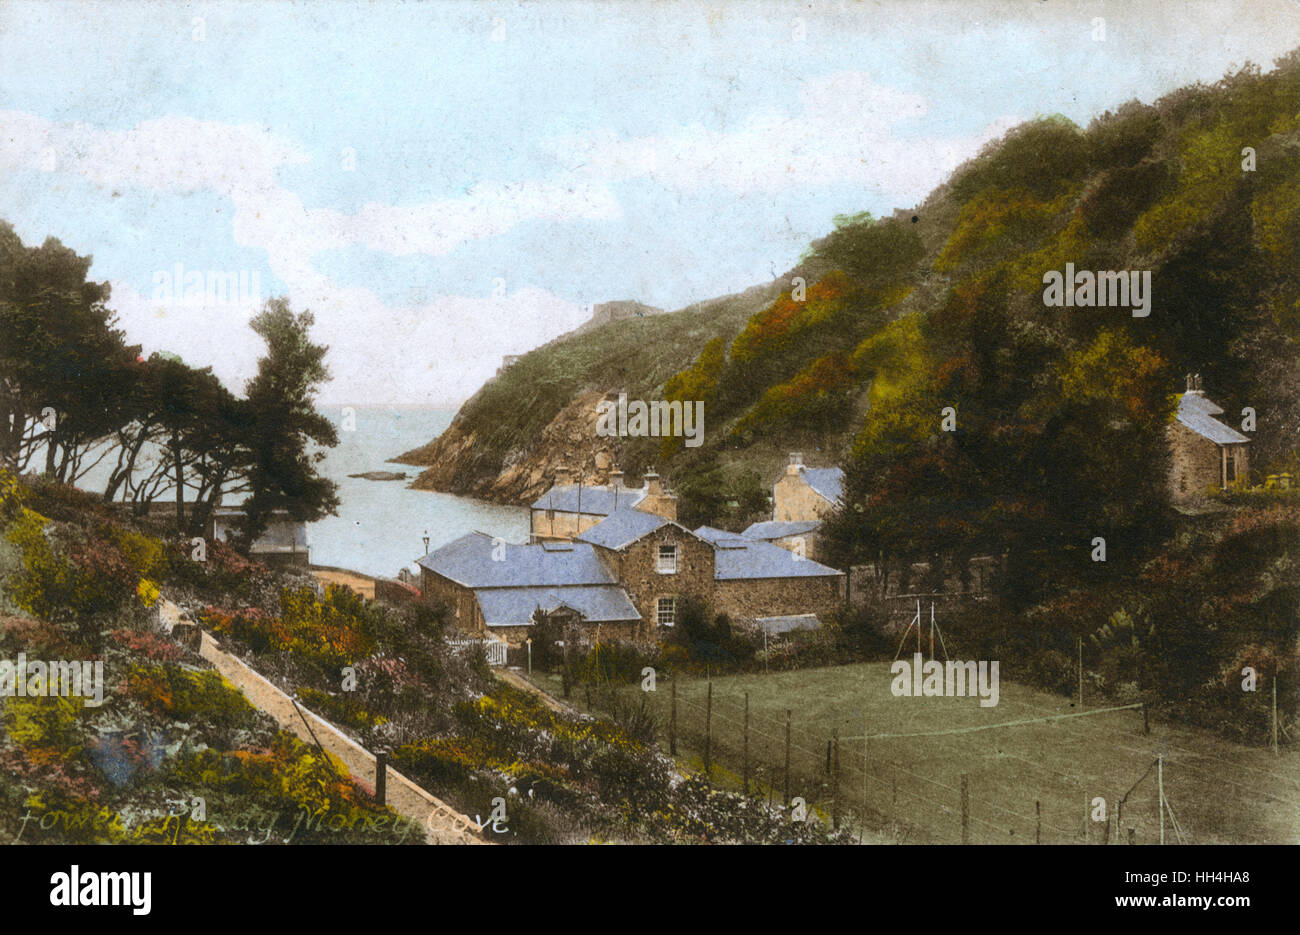 Ready Money Cove, Fowey, south-east Cornwall, with a tennis court in the foreground. - Stock Image